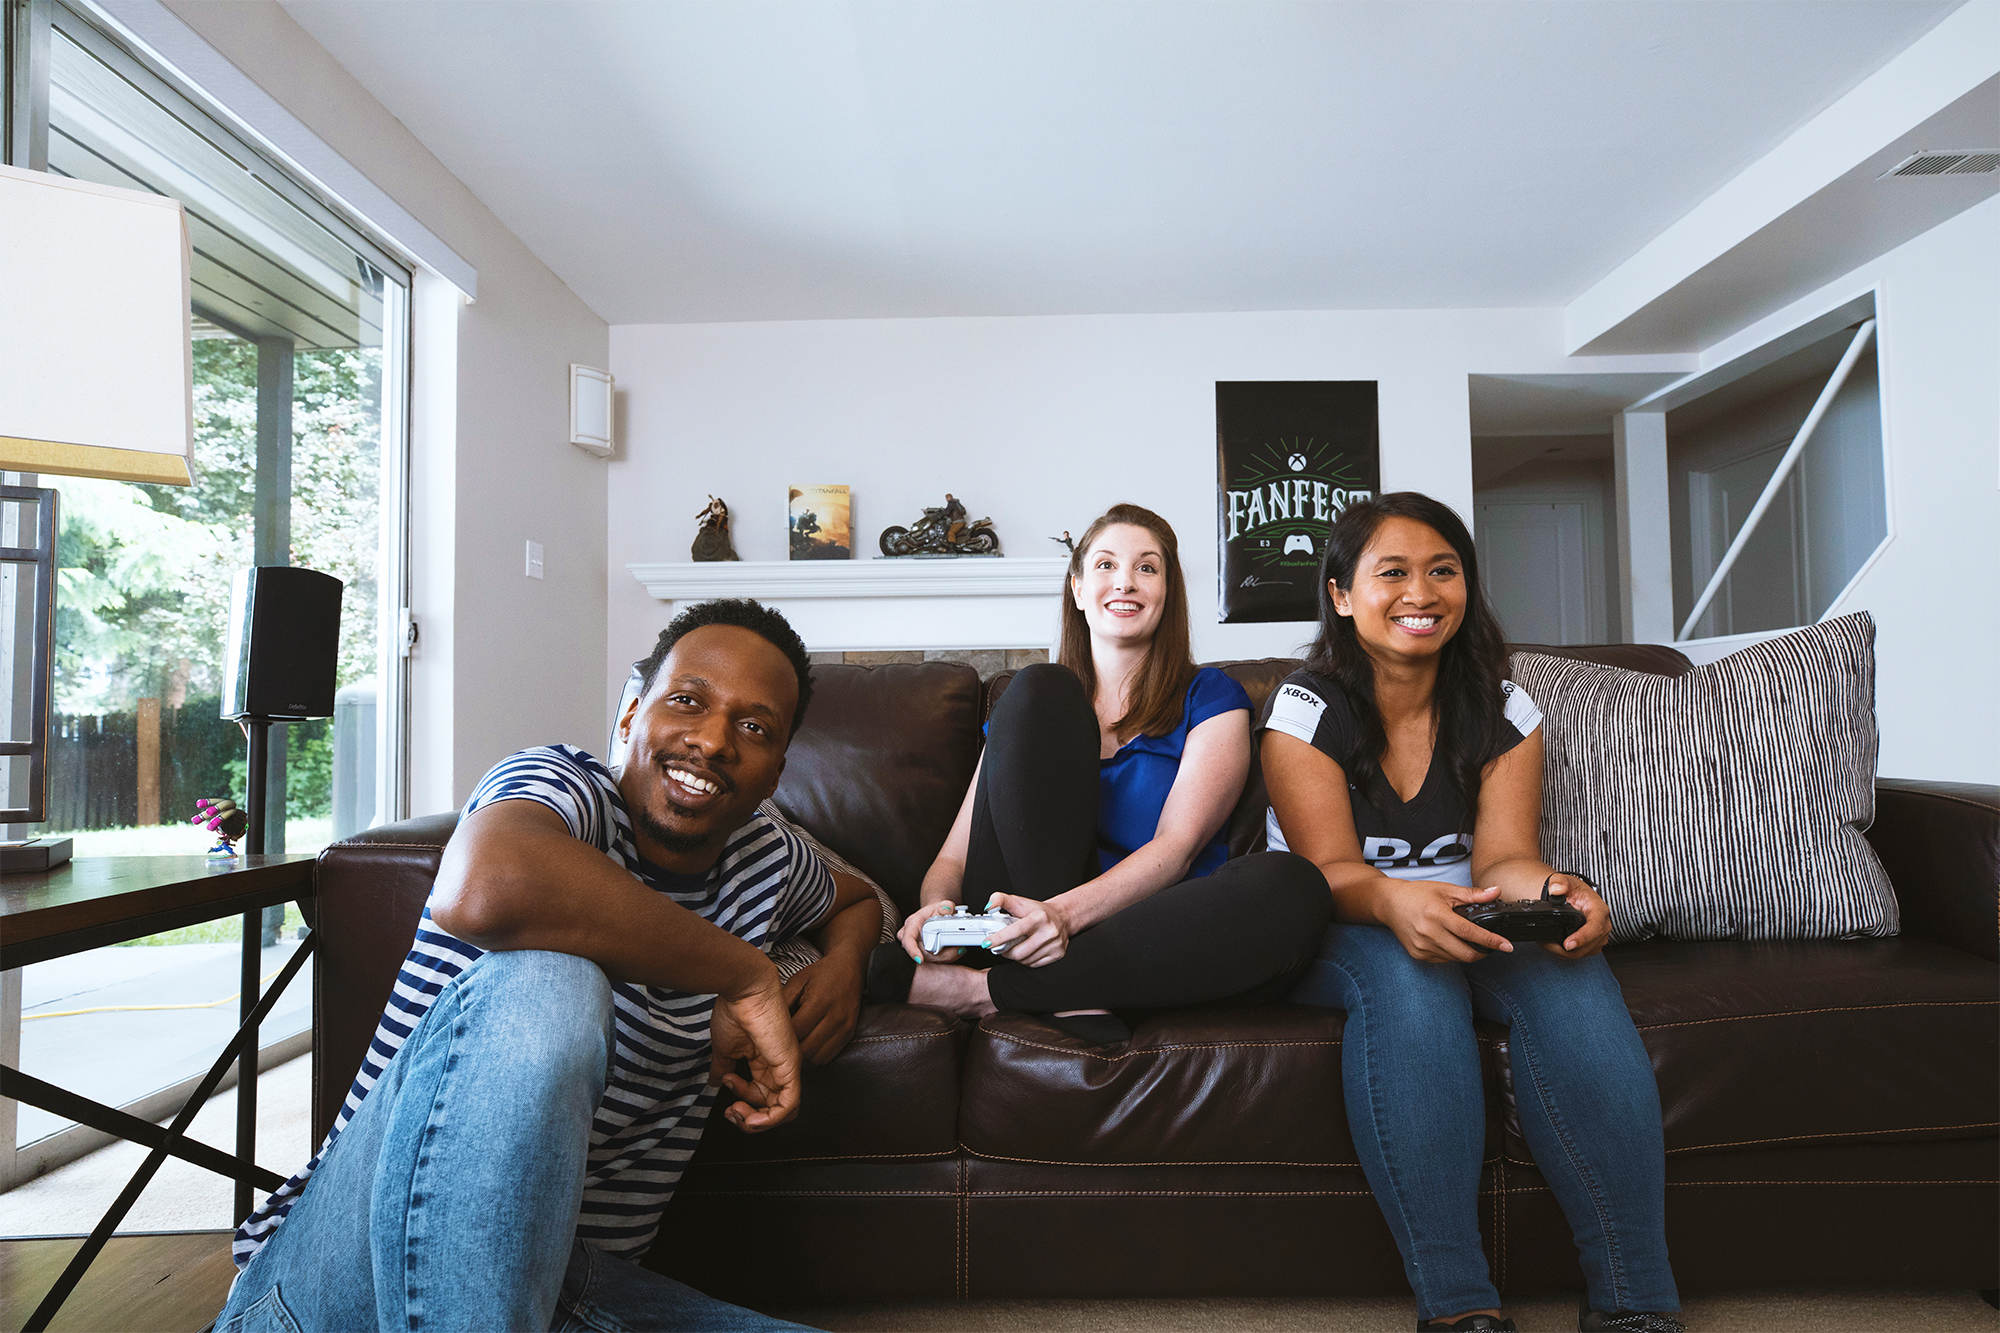 Two women playing video games sitting on a couch while a man is sitting nearby hanging out and watching them play